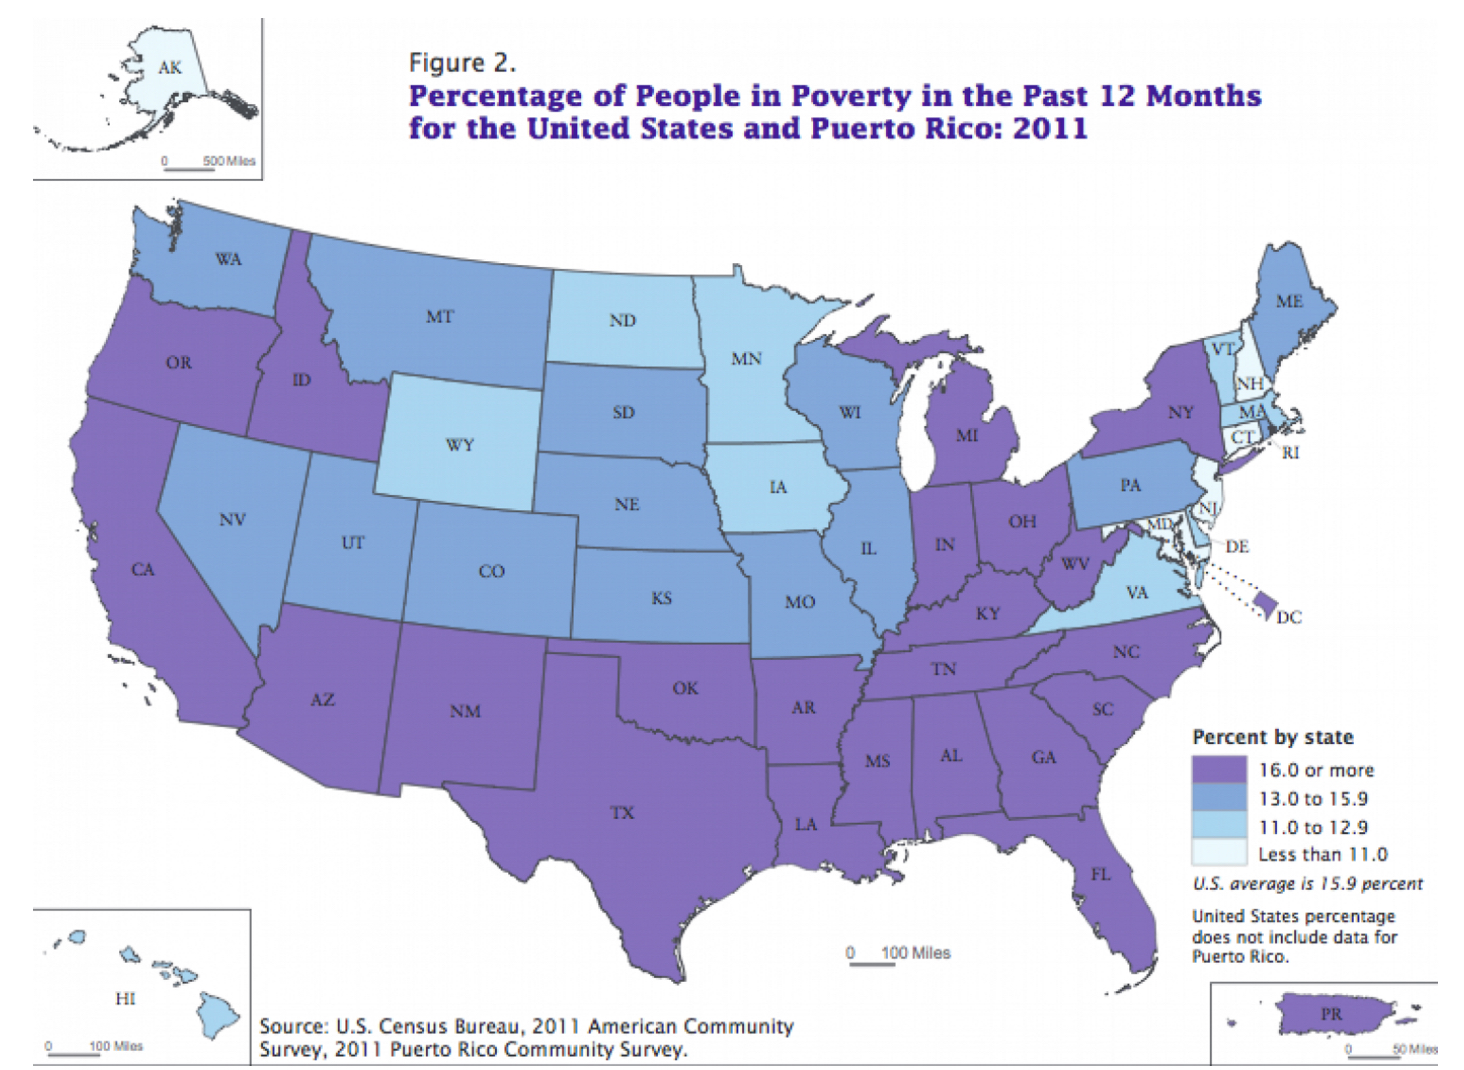 here for comparison are some additional mapsstarting with slave and free states in 1860 rates of poverty in 2011 and red and blue states in 2014